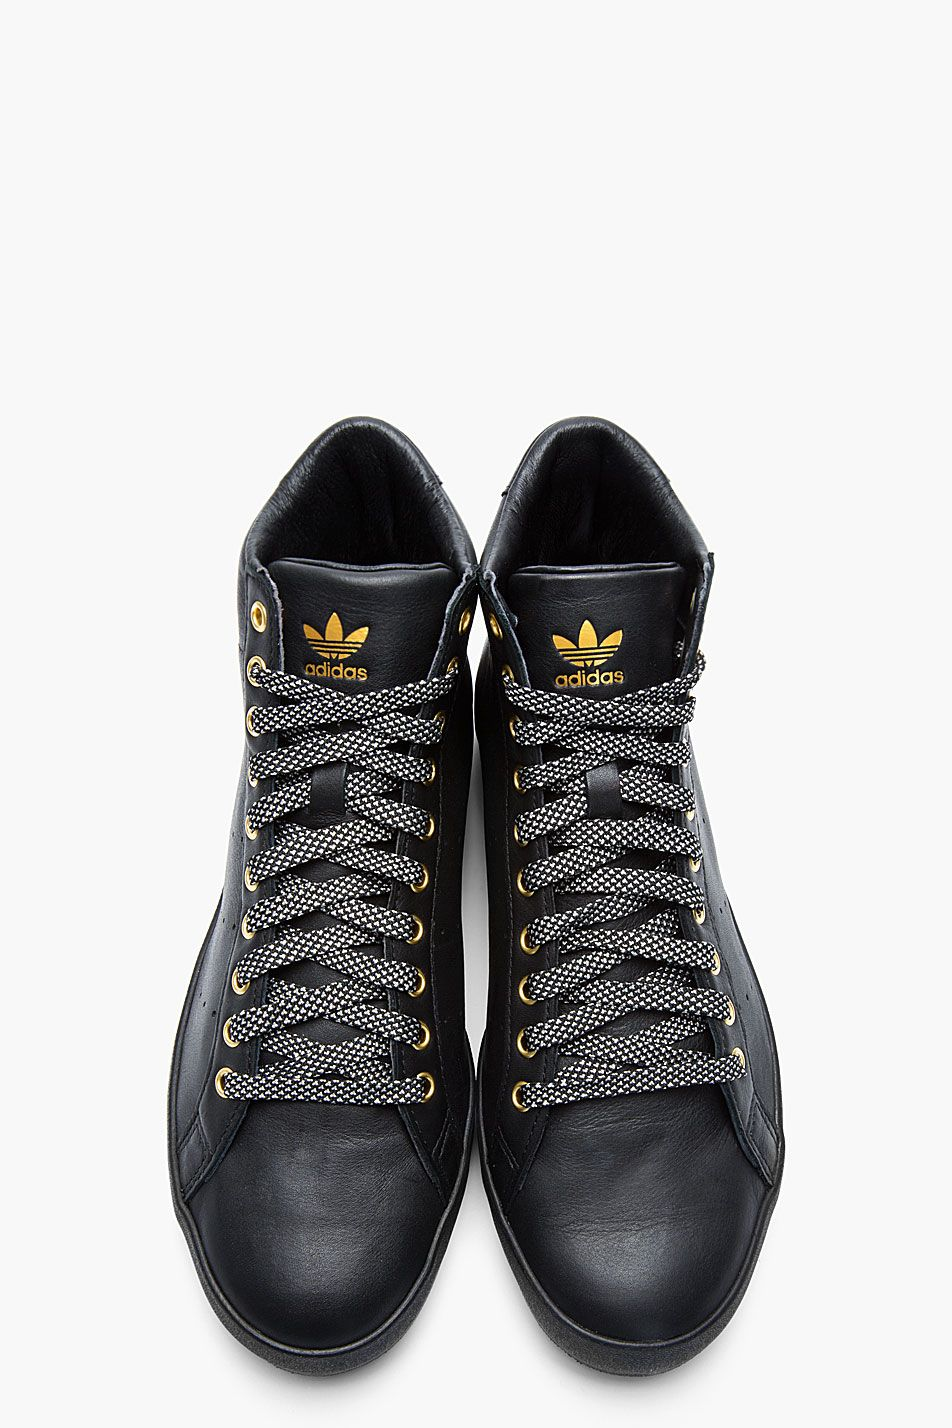 ADIDAS ORIGINALS BY O.C. Black and gold leather Rod Laver Vintage mid-tops